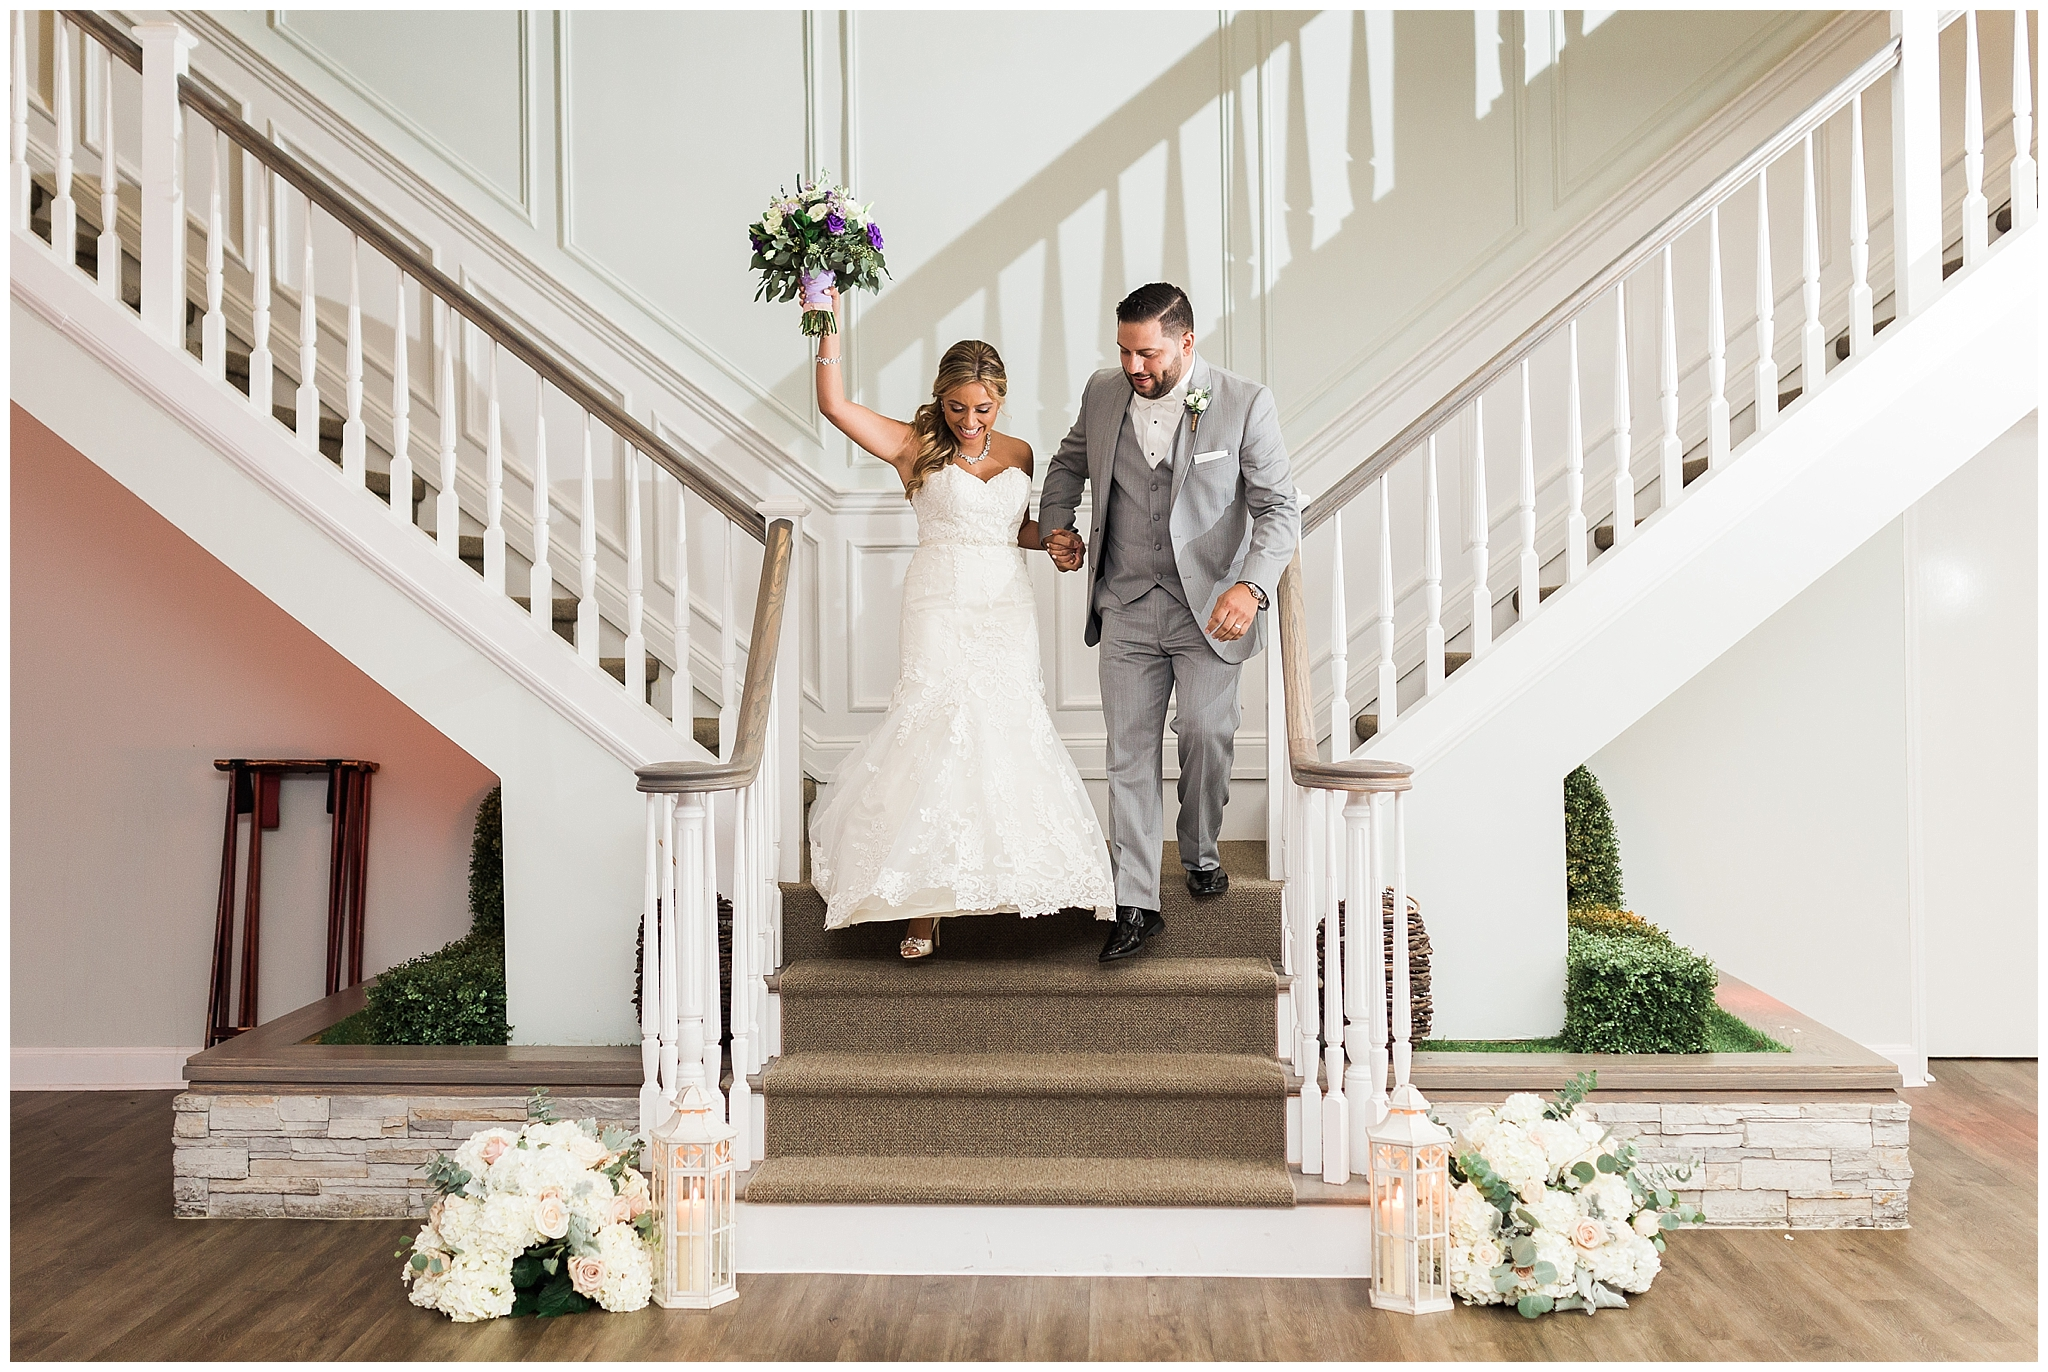 07. This DREAMY staircase entrance. - Jessica and Ricardo — The Vineyards at Aquebogue